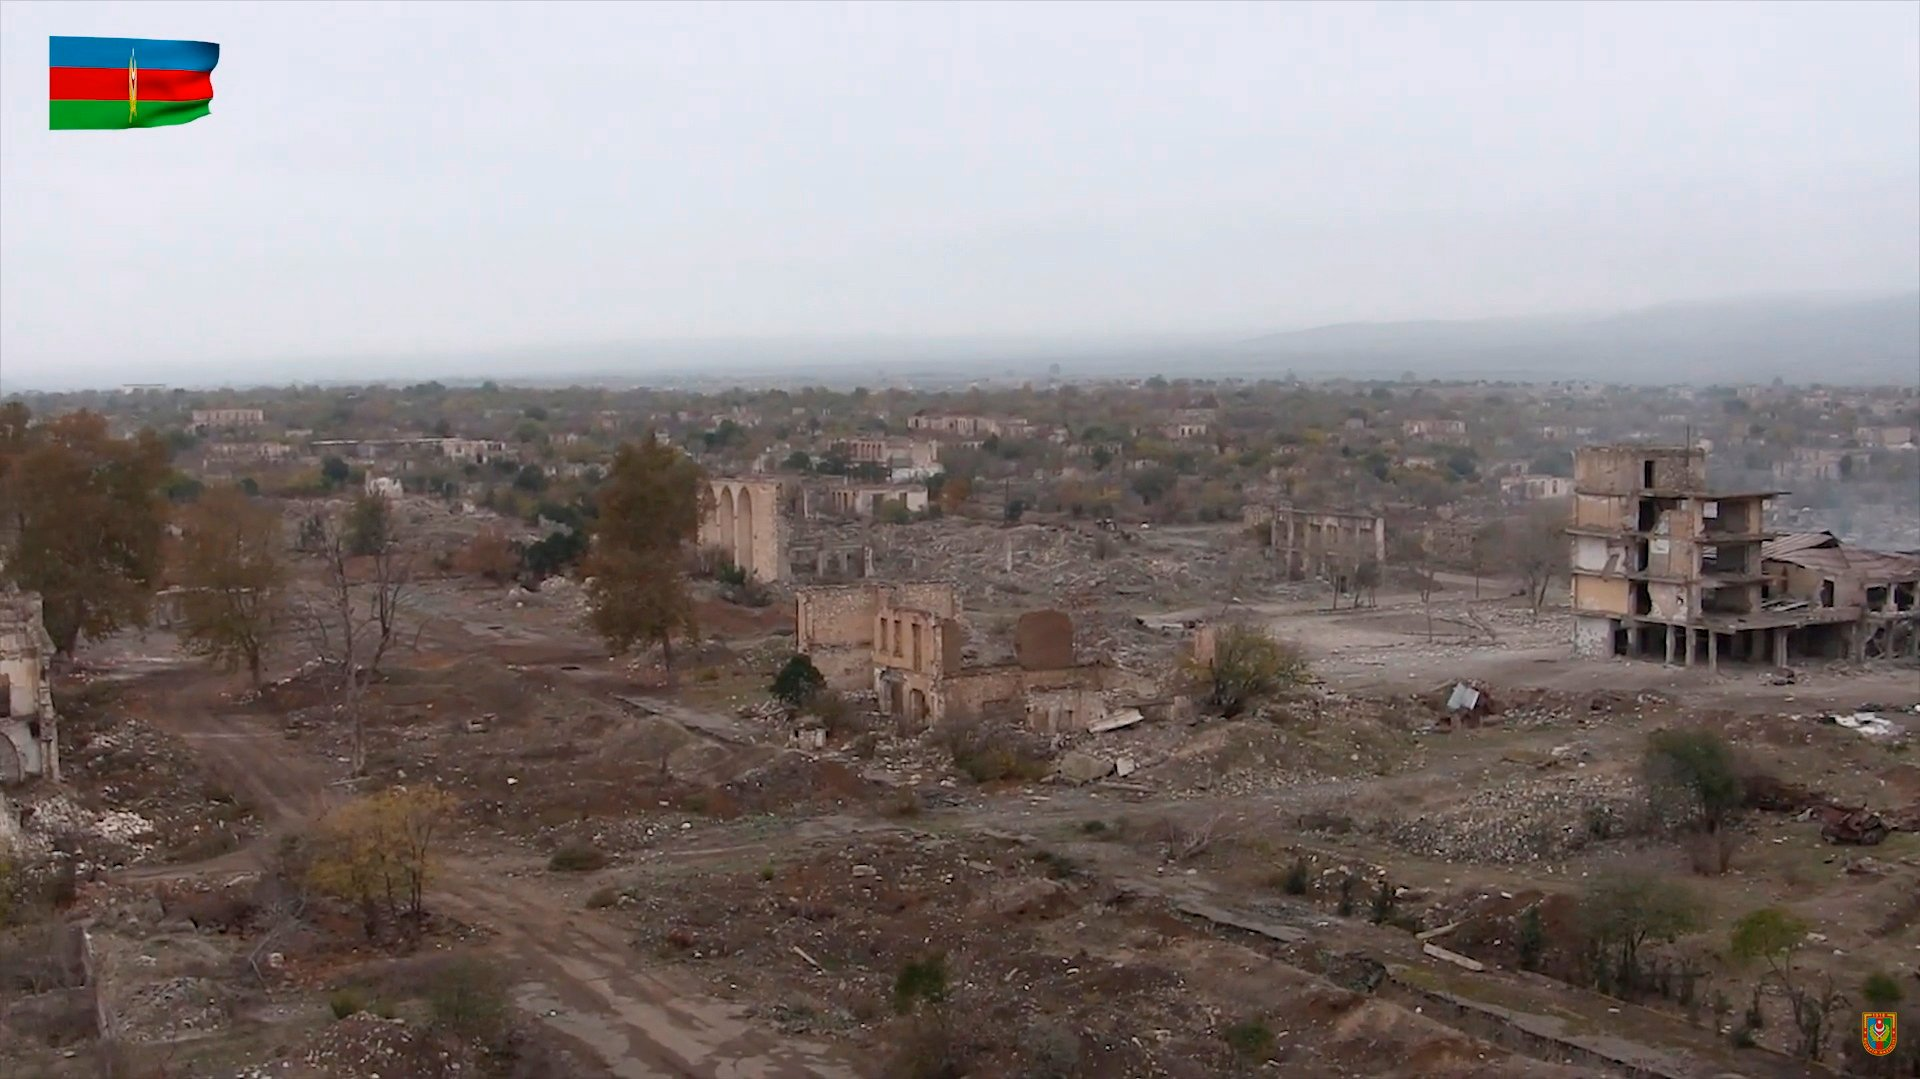 epa08831723 A handout still image taken from a video footage released 20 November 2020 by the press service of the Azerbaijan's Defence Ministry shows a general view of a ruined city of Aghdam in the Aghdam region, Azerbaijan, 20 November 2020. In accordance with the trilateral statement signed by the Azerbaijan's and Russian Presidents and  Armenian Prime Minister, the Azerbaijani army units entered the Aghdam region on 20 November 2020 and took it under the Azerbaijani control.  EPA/AZERBAIJAN DEFENCE MINISTRY / HANDOUT MANDATORY CREDIT/BEST QUALITY AVAILABLE/ HANDOUT EDITORIAL USE ONLY/NO SALES